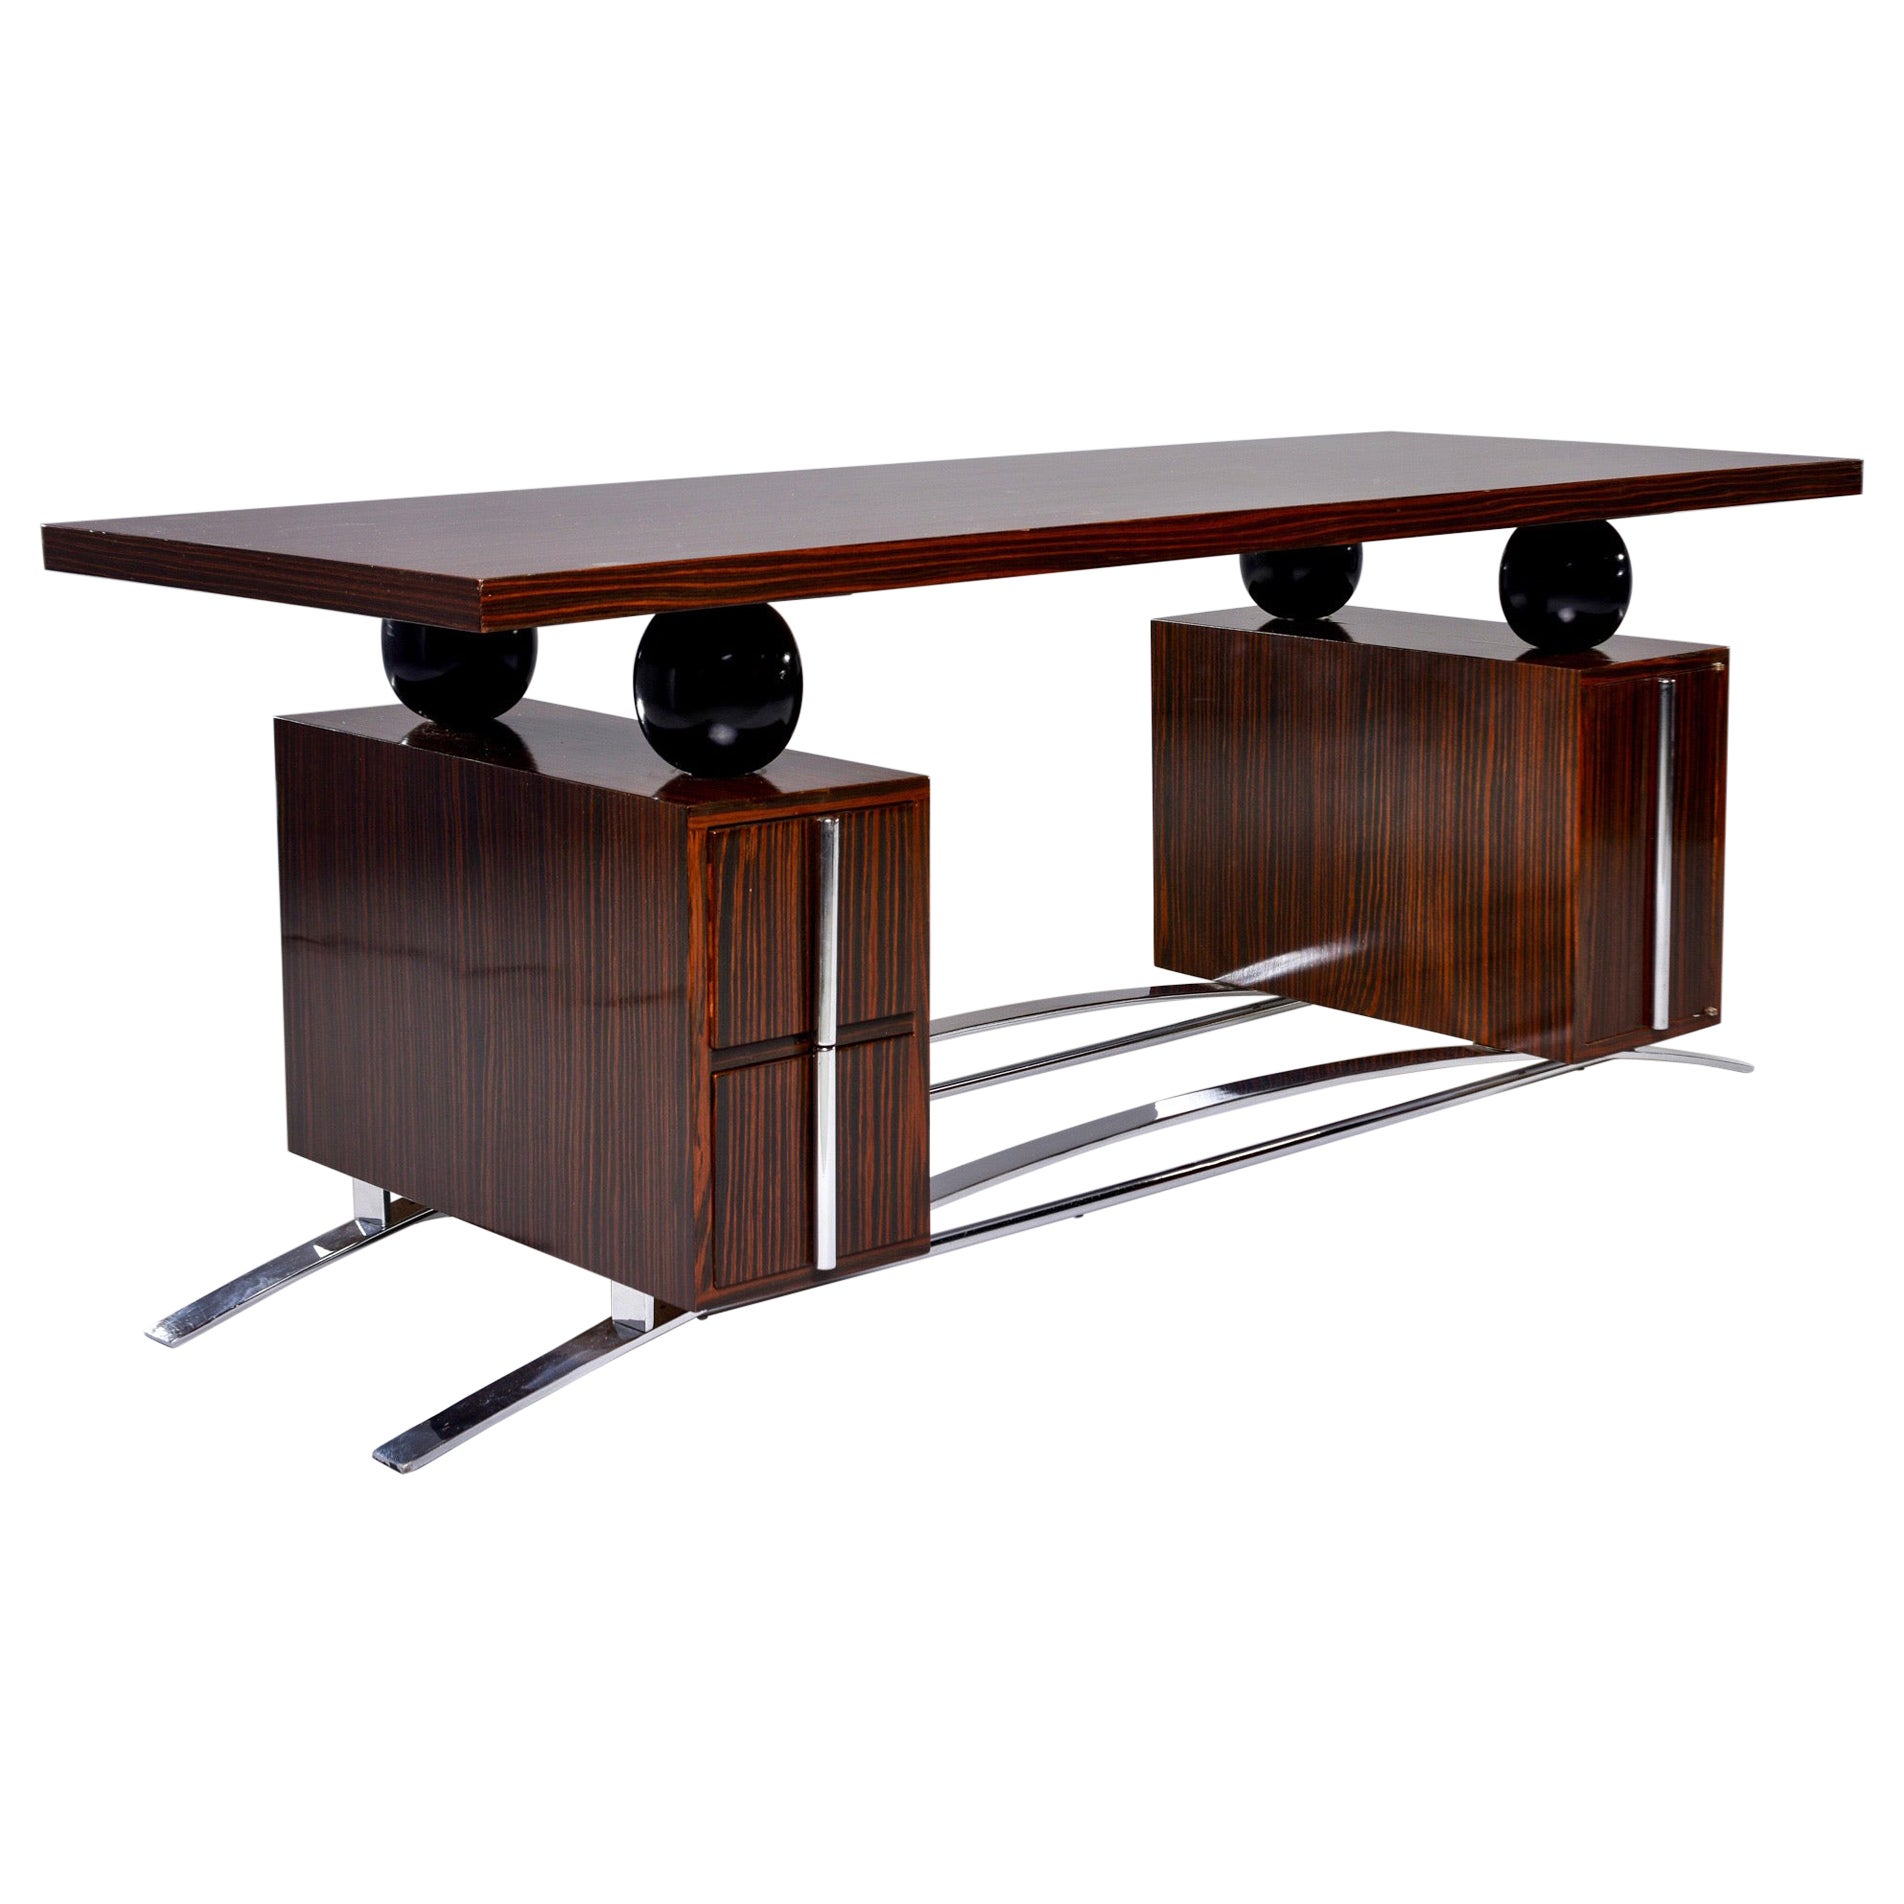 French Modernist Macassar Ebony Desk with Polished Nickel Base and Hardware